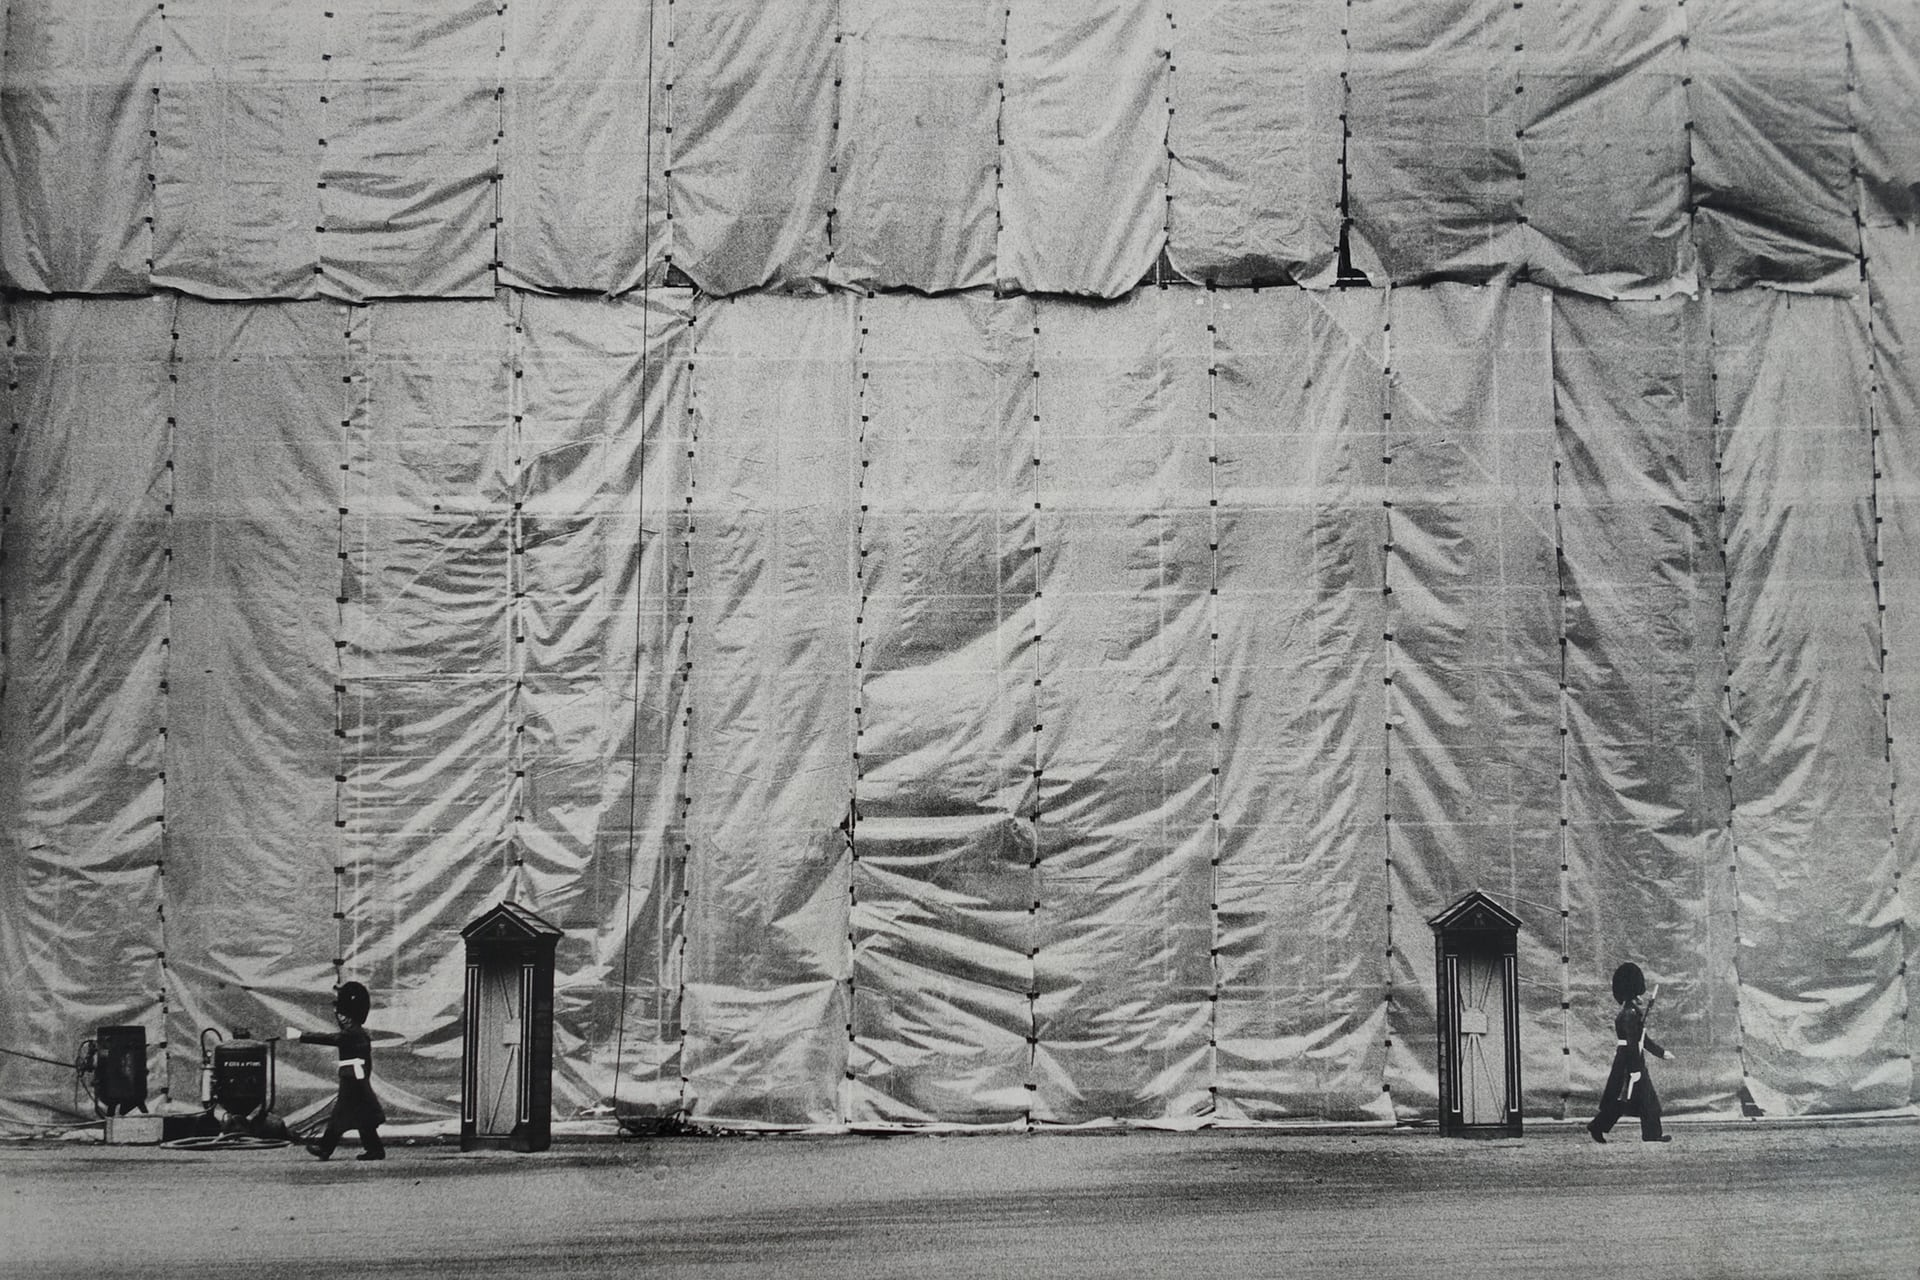 Buckingham Palace Facade, London, 1970